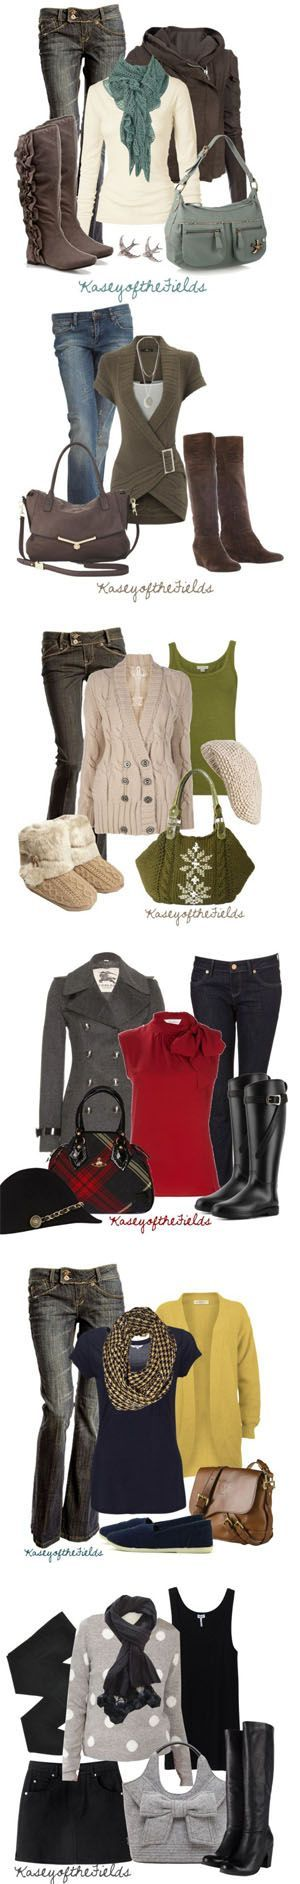 12 Cozy Fall Fashions - Honeybear Lane